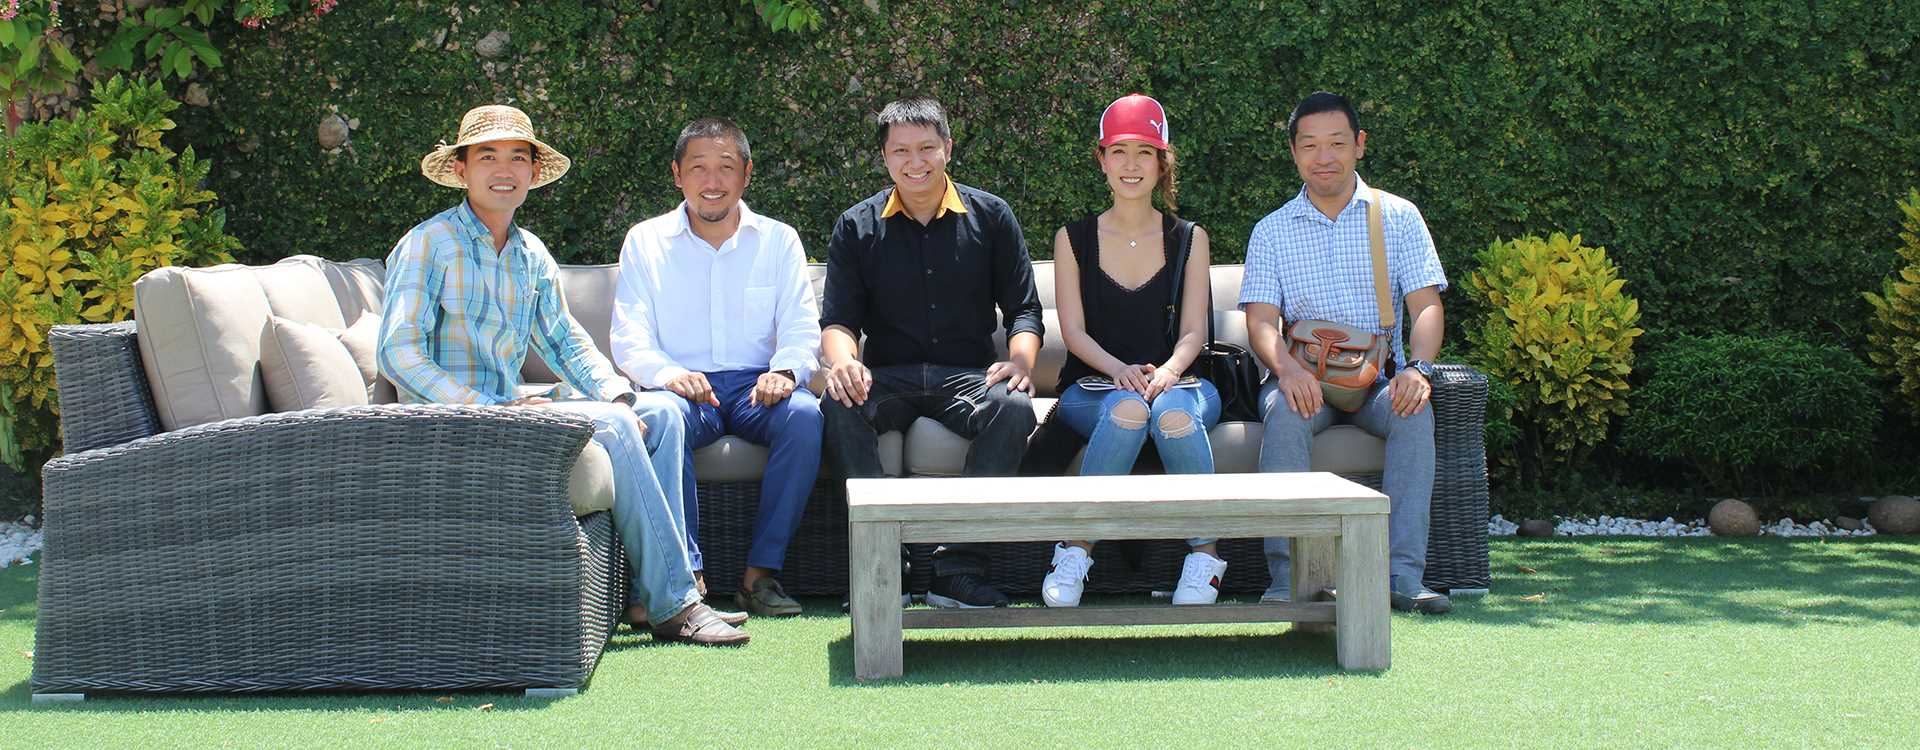 ATC Outdoor Patio Furniture Manufacturer Client Visits